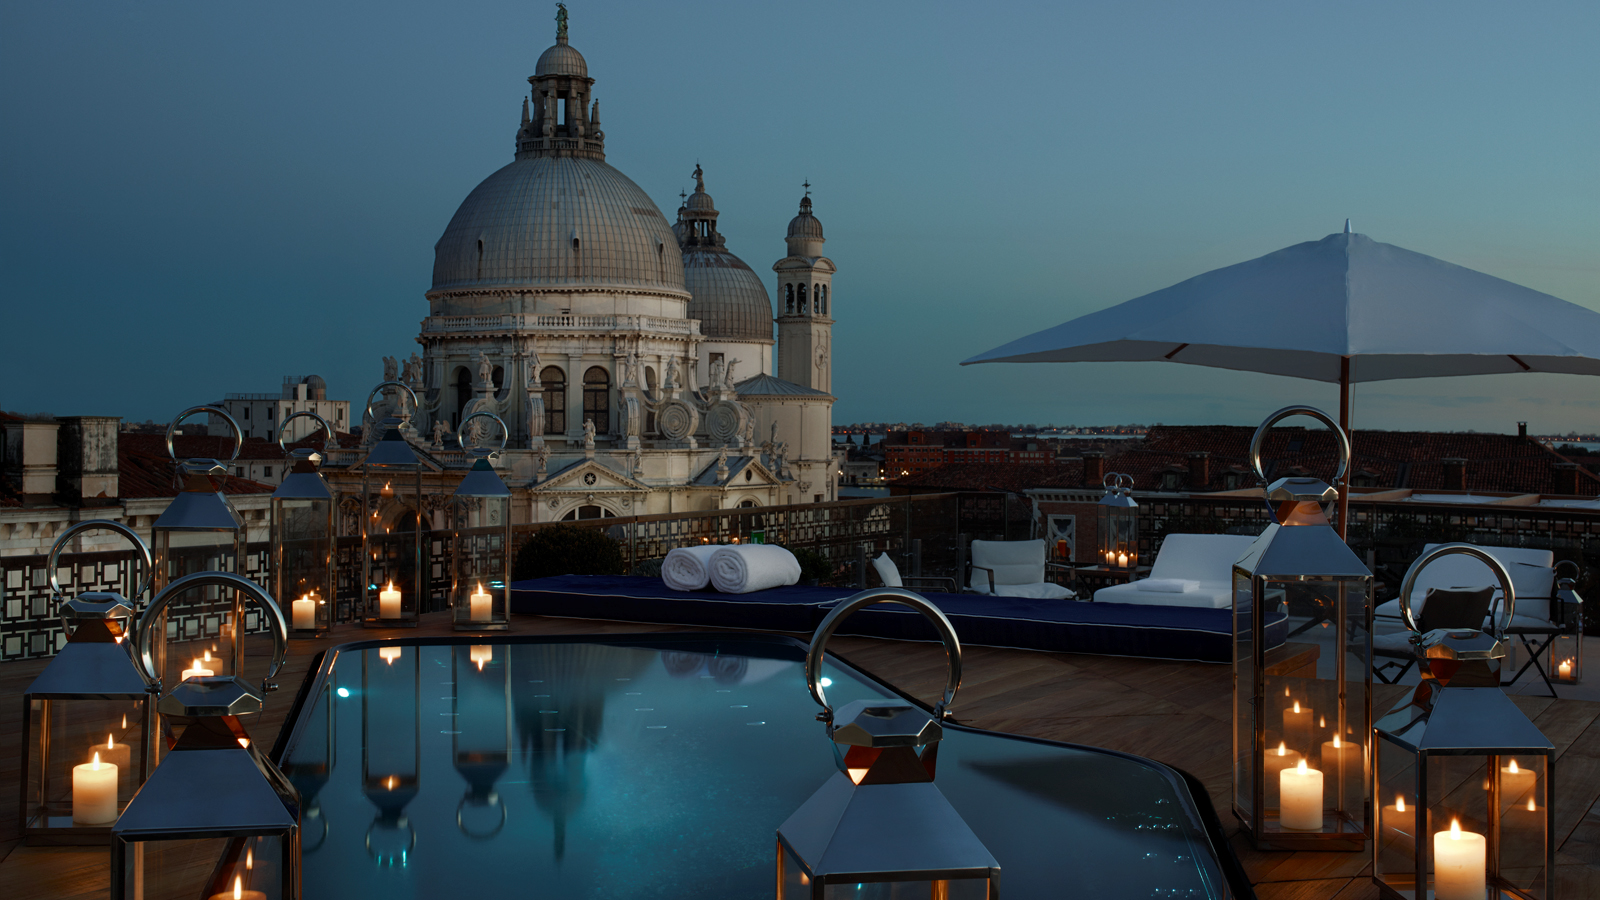 Giudecca Gritti Honeymoon With A View: The Gritti Palace, Venice, Italy